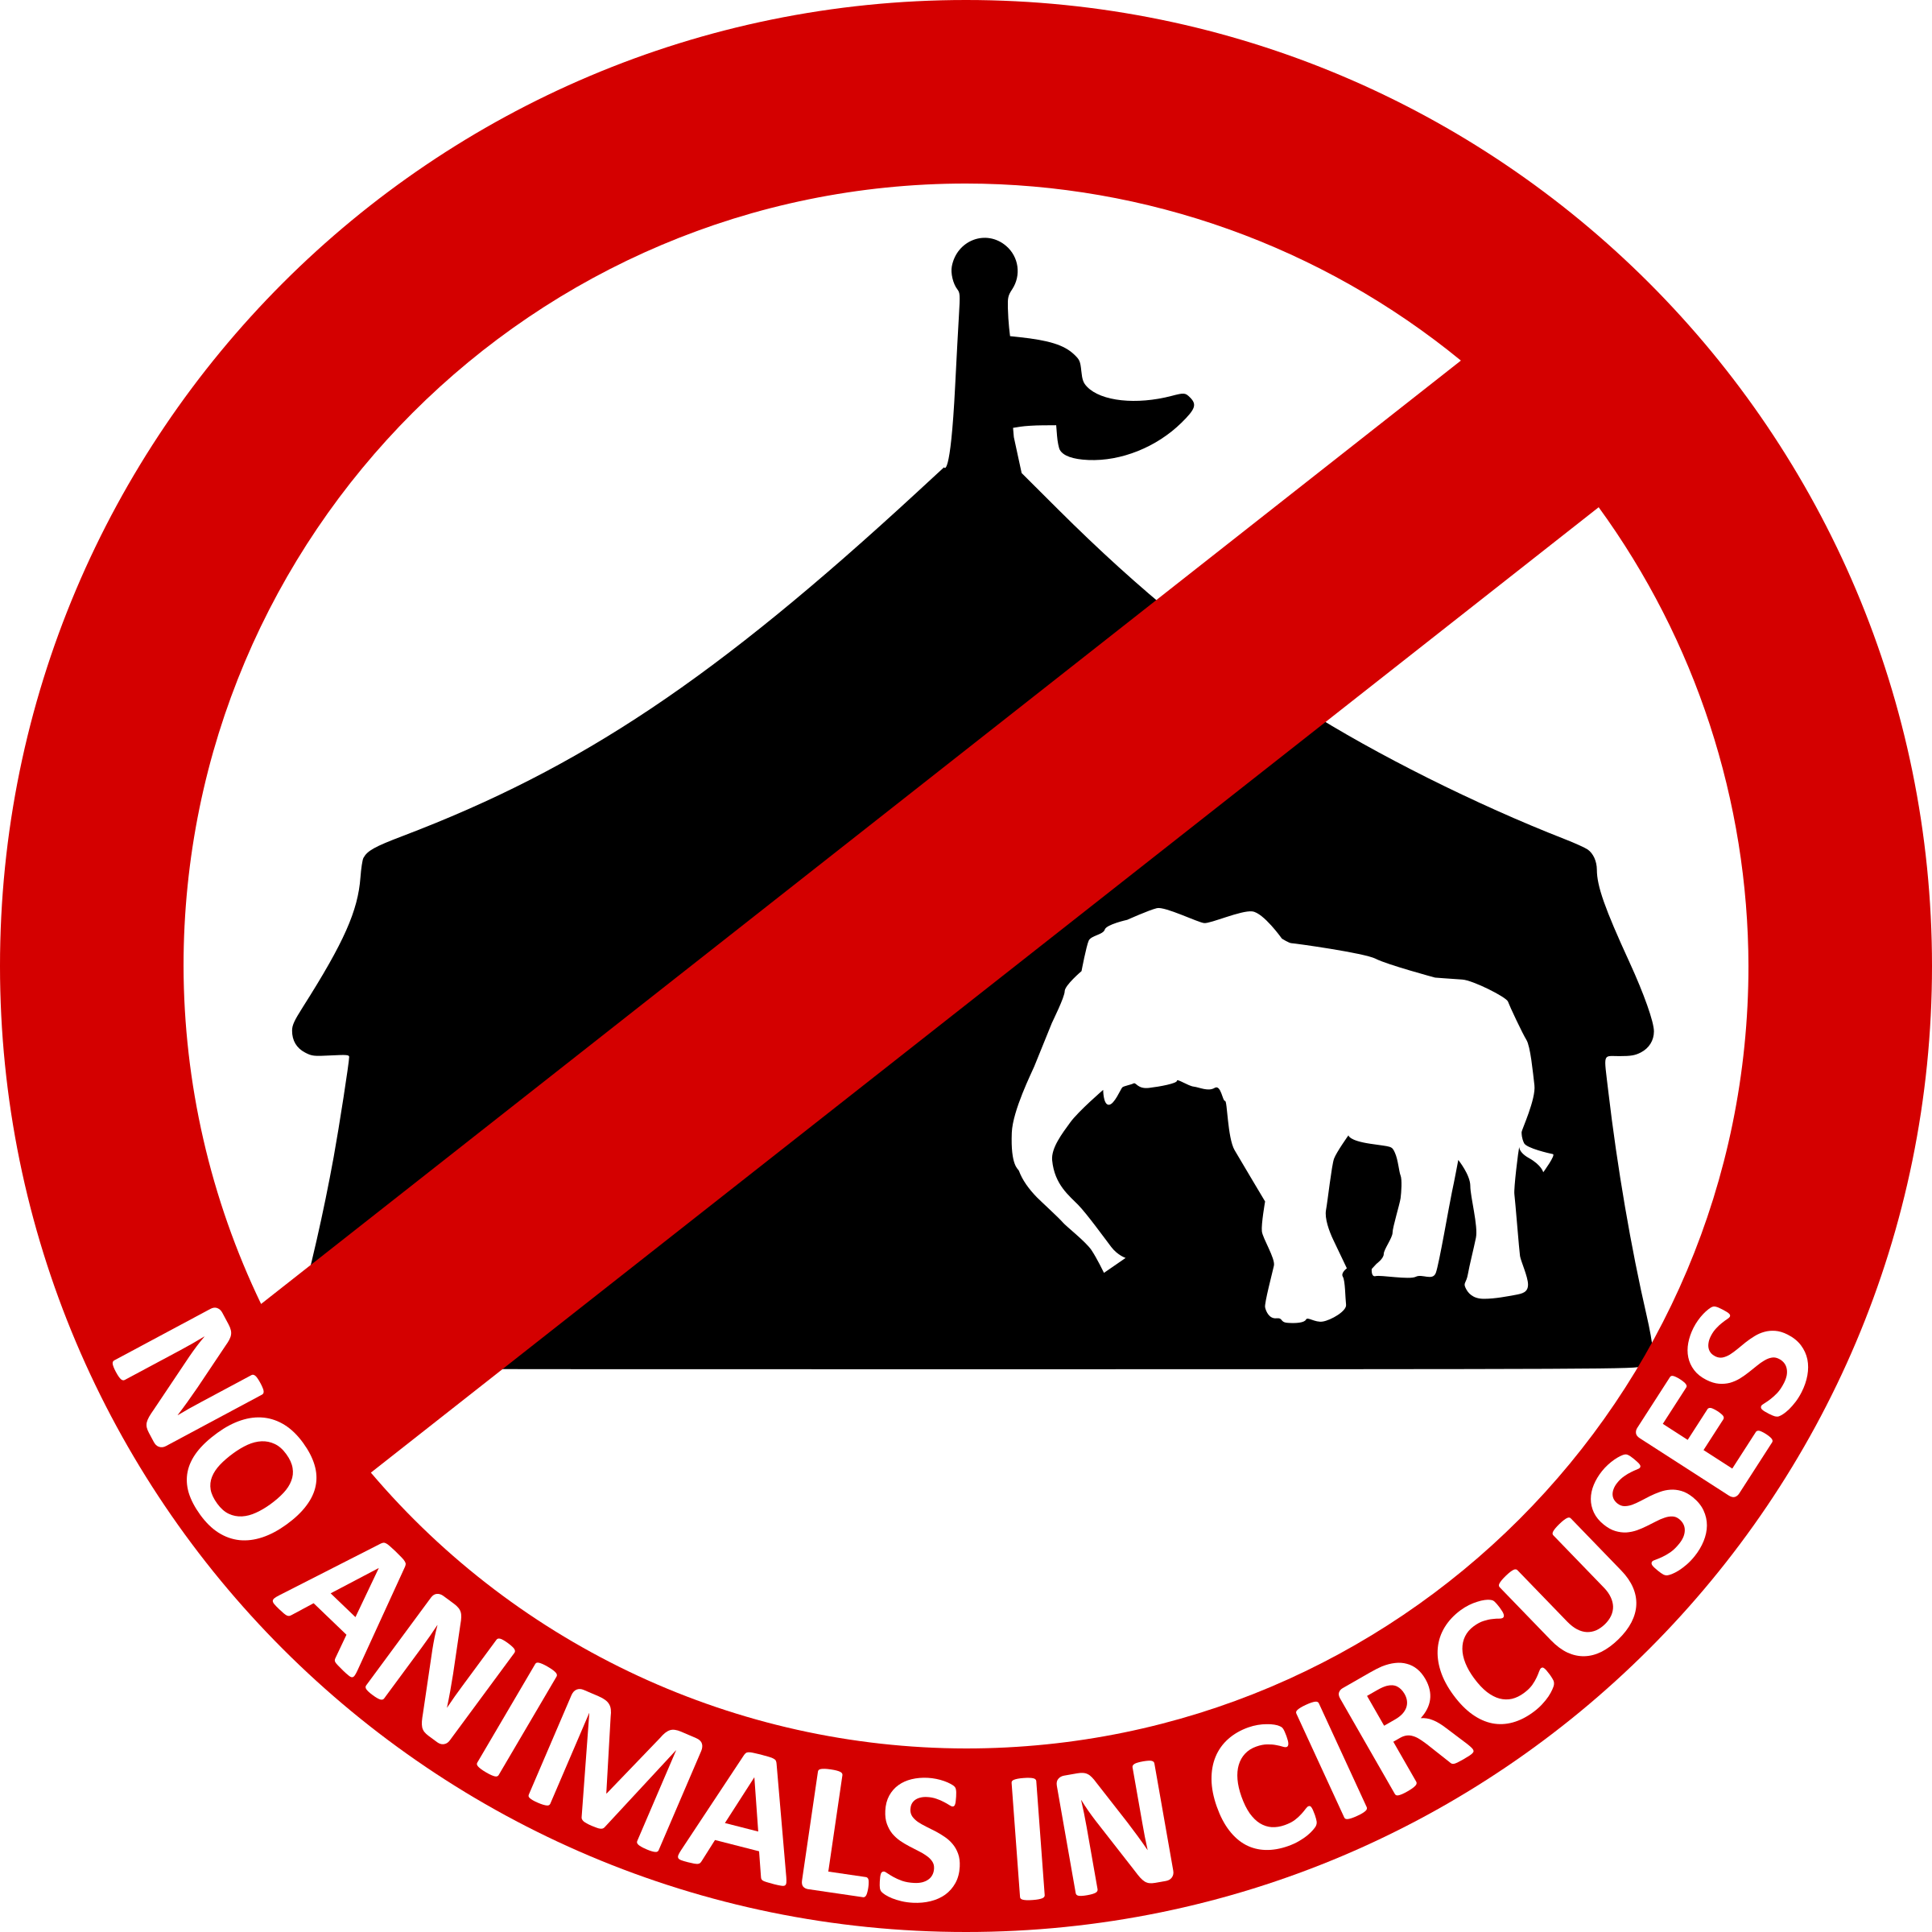 No Animals in circuses 4 by Chrisdesign